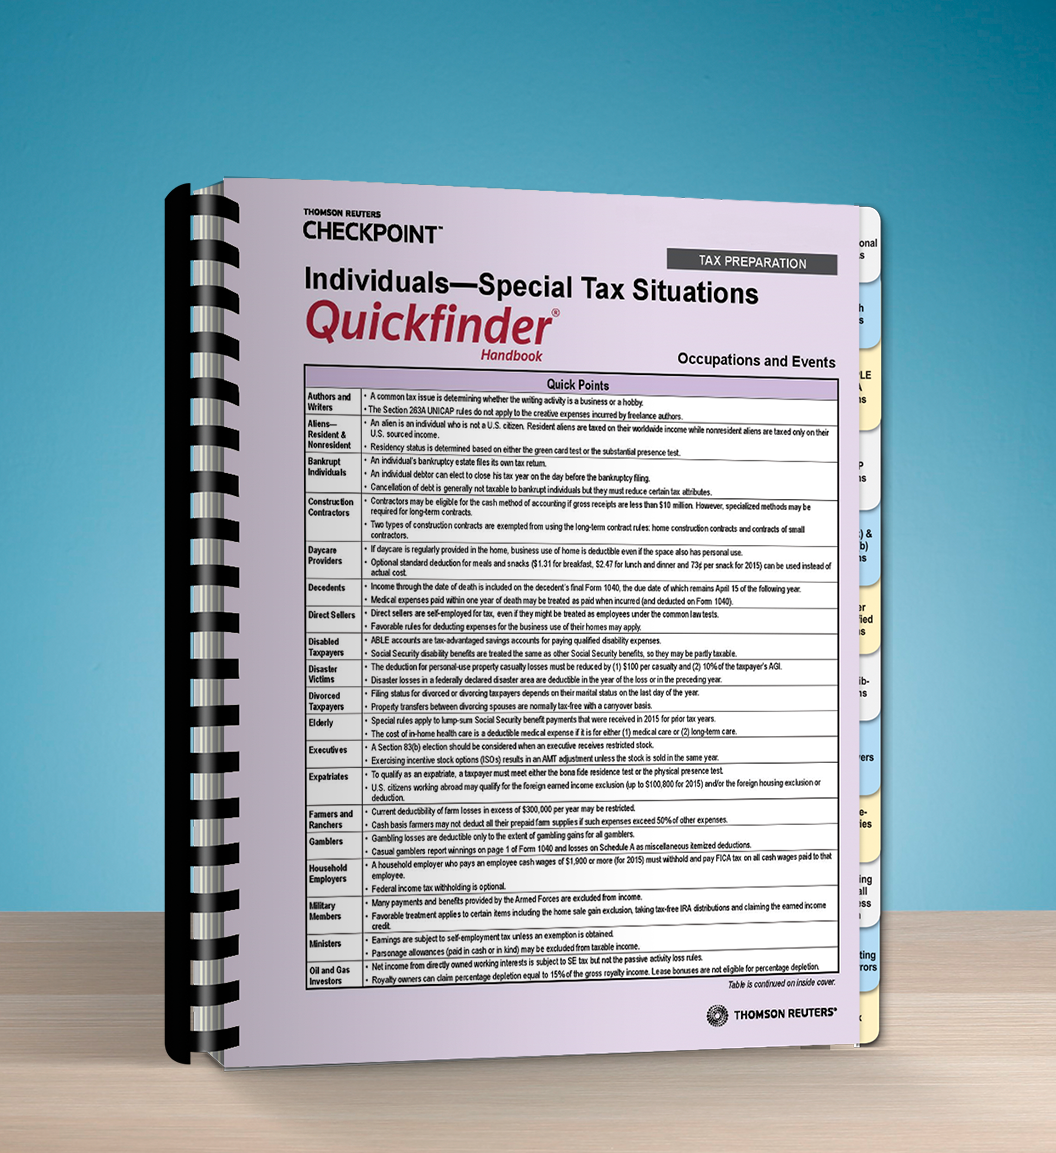 Individuals – Special Tax Situations Quickfinder Handbook (2017) - #3740